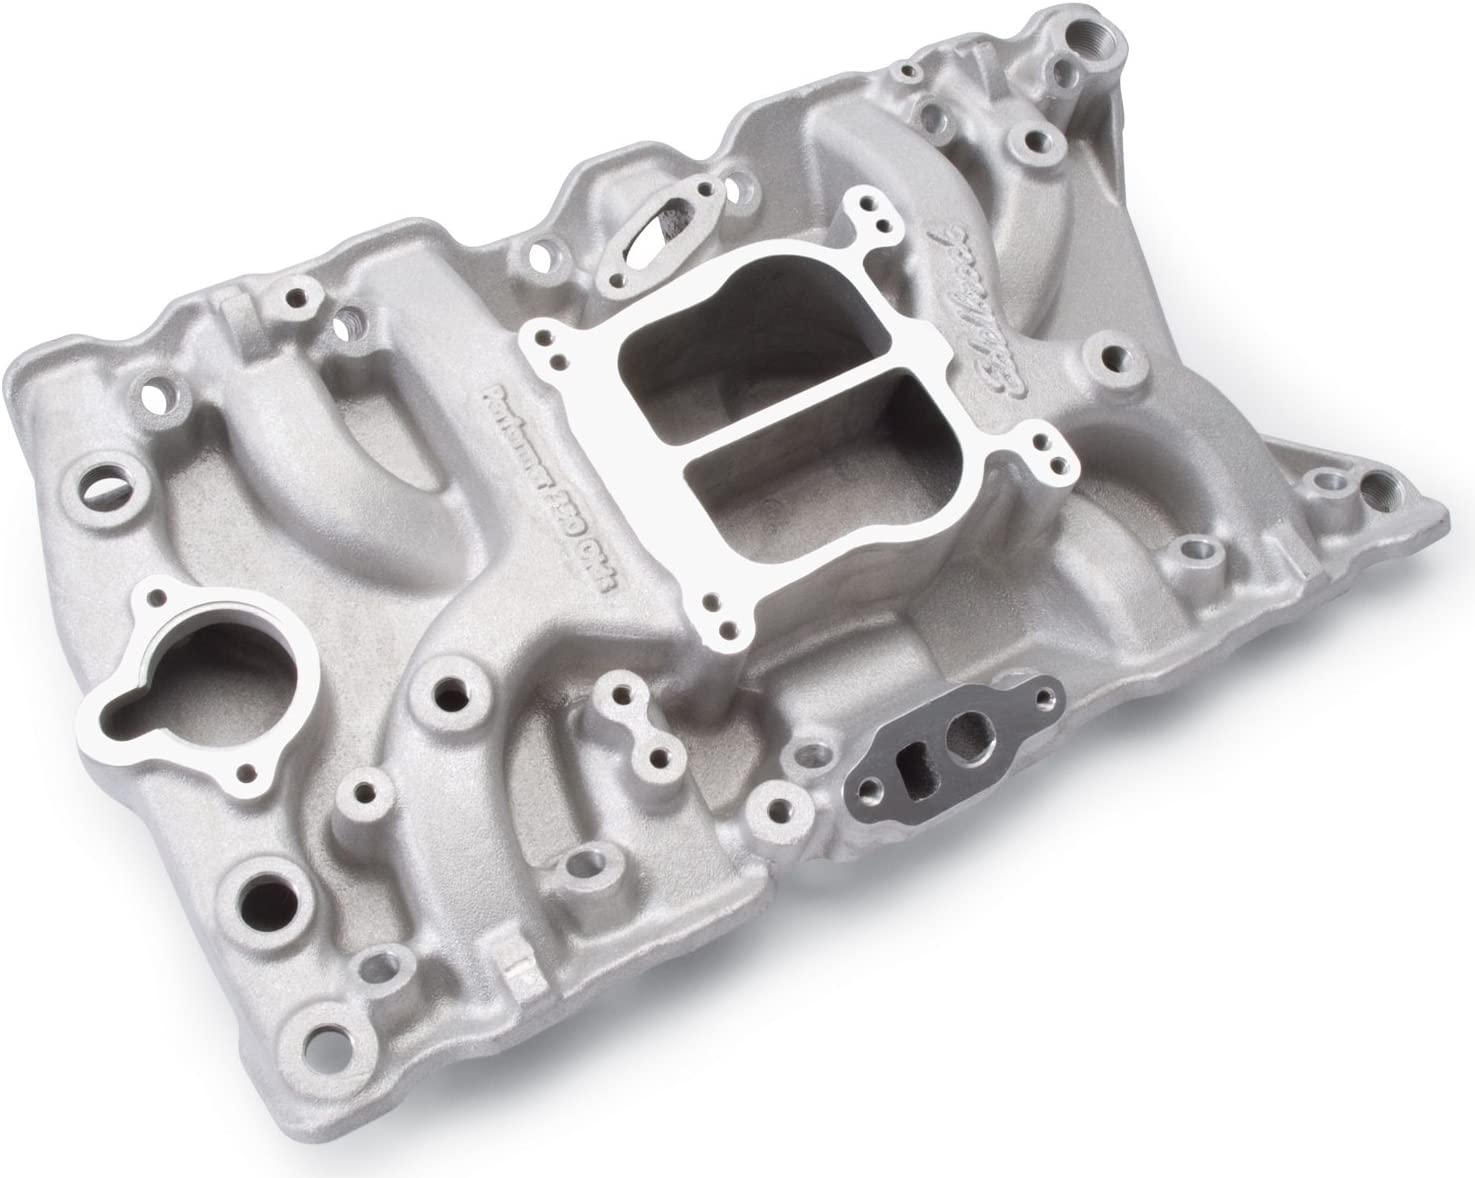 Edelbrock 3711 Direct Max 67% OFF stock discount Performer Intake Manifold